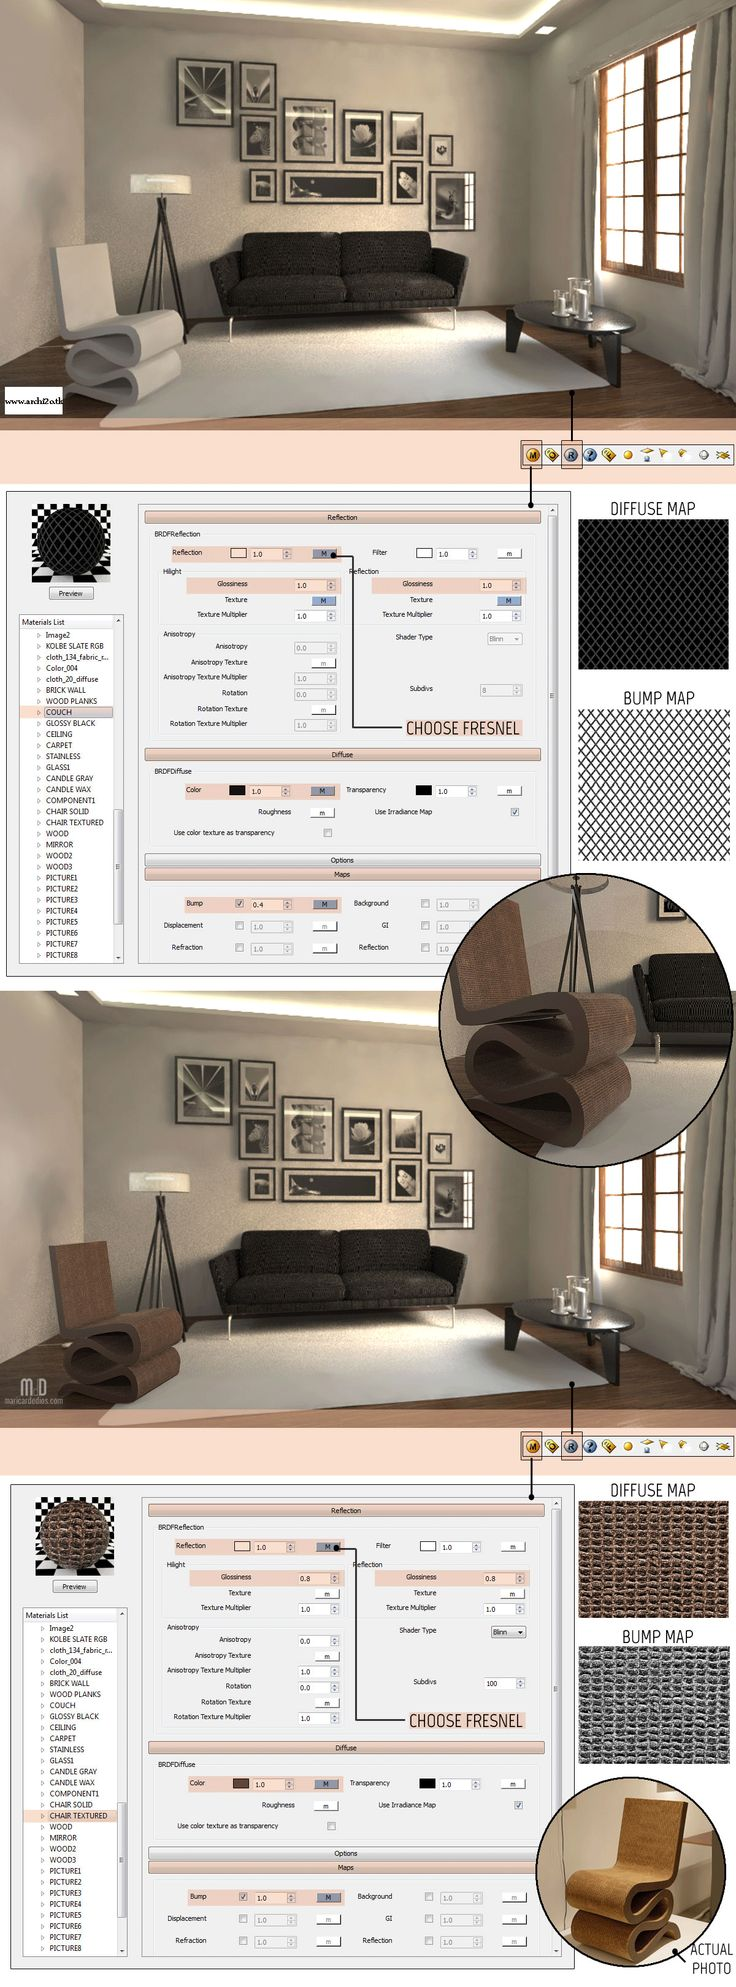 SketchUp Tutorial Part 2: VRAY MATERIALS AND TEXTURES Full Article At http://www.archi2o.tk/2014/12/sketchup-tutorial-part-2-vray-materials_18.html